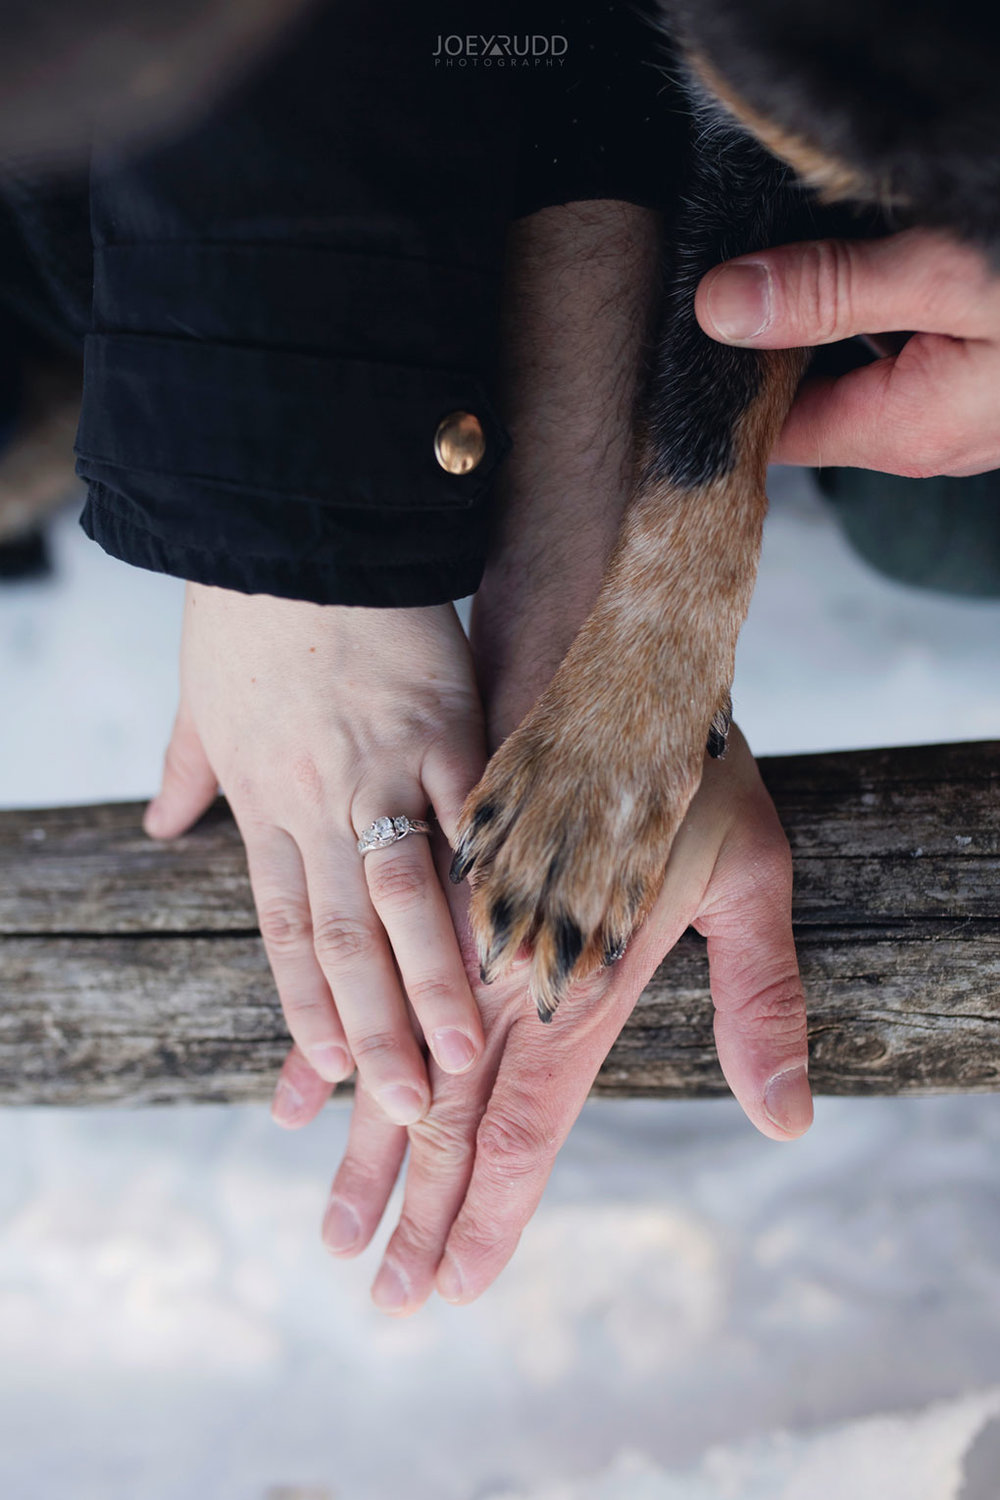 Mer Bleue Engagement, Ottawa Engagement, Engagement Photos, Engagement Photographer, Ottawa Wedding Photographer, Joey Rudd Photography, Ottawa Photographer, Winter Photos, Photo Location, Posing, Dog Paw